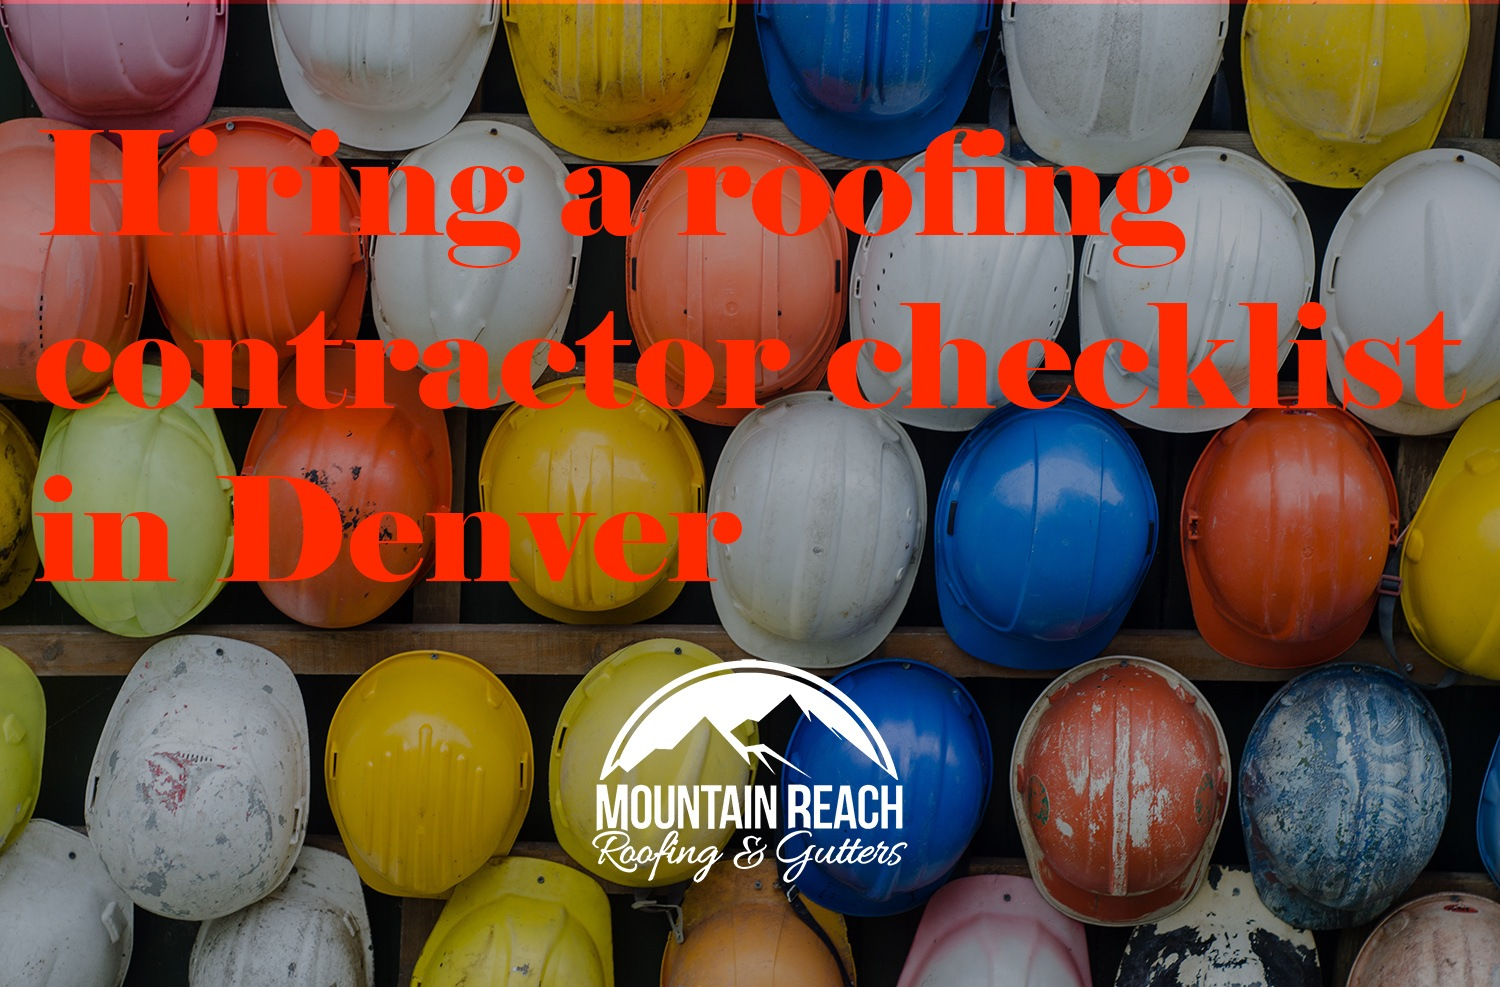 Hiring a roofing contractor checklist in Denver